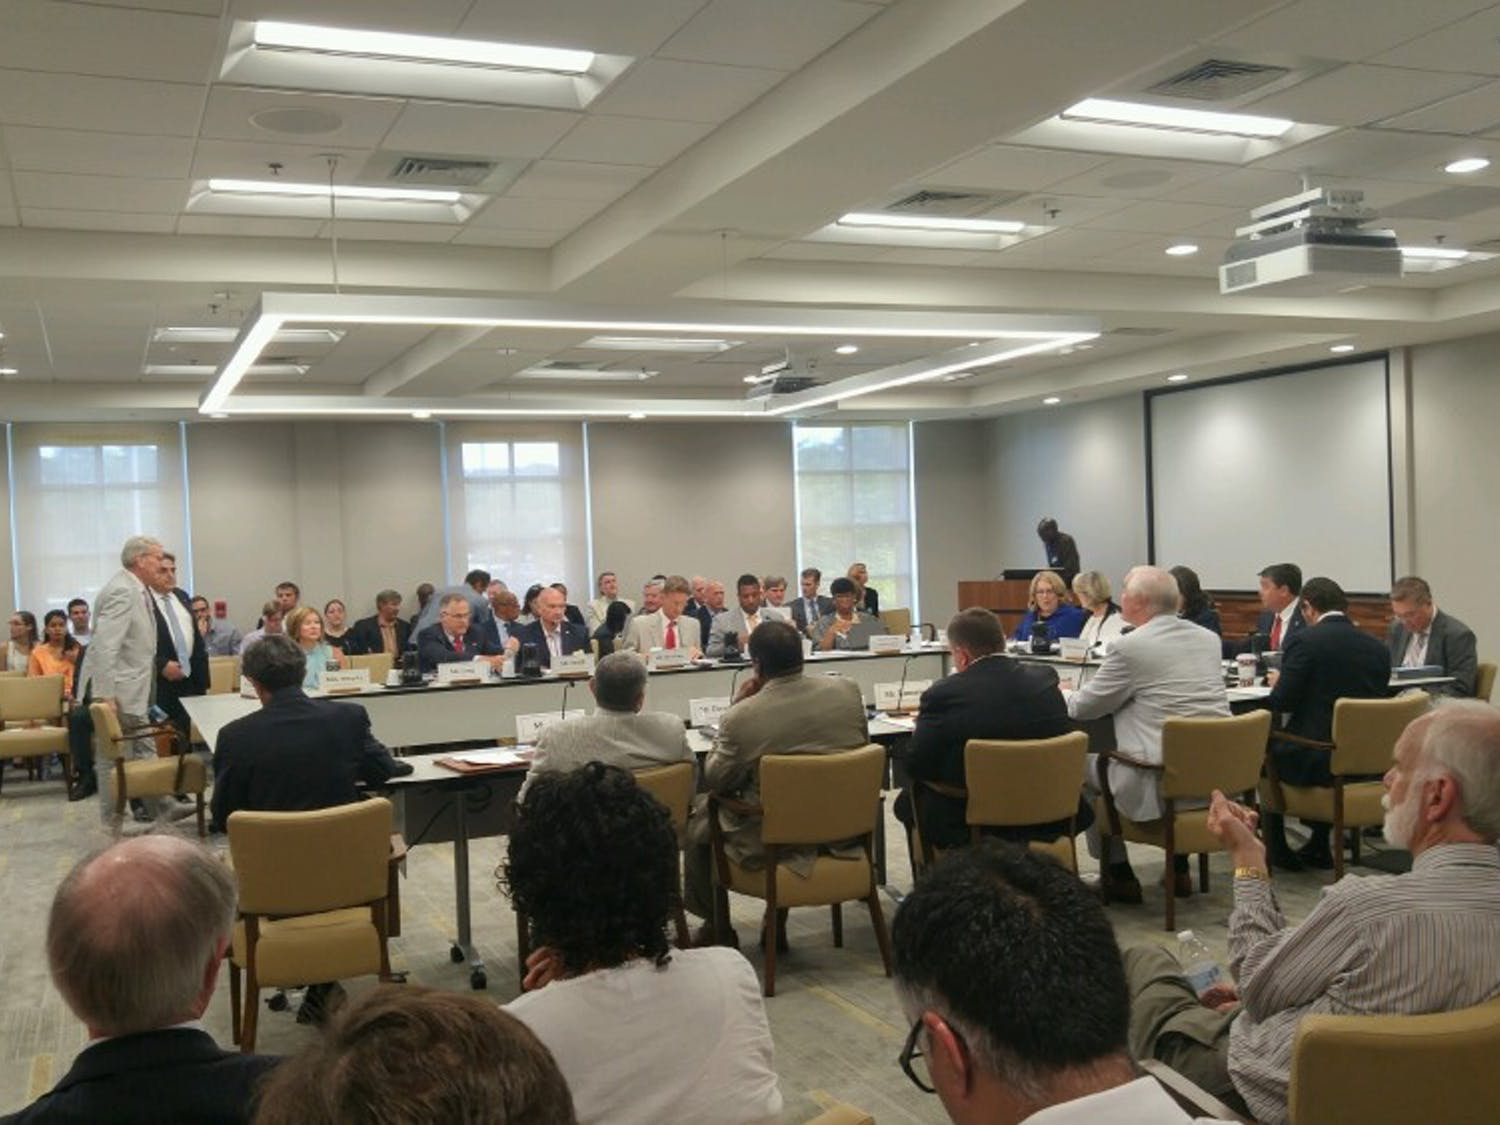 The Board of Governors' Committee on Educational Planning, Policies, and Programs voted 5-1 to recommend a litigation ban on UNC's Center for Civil Rights at its Aug. 1 meeting.